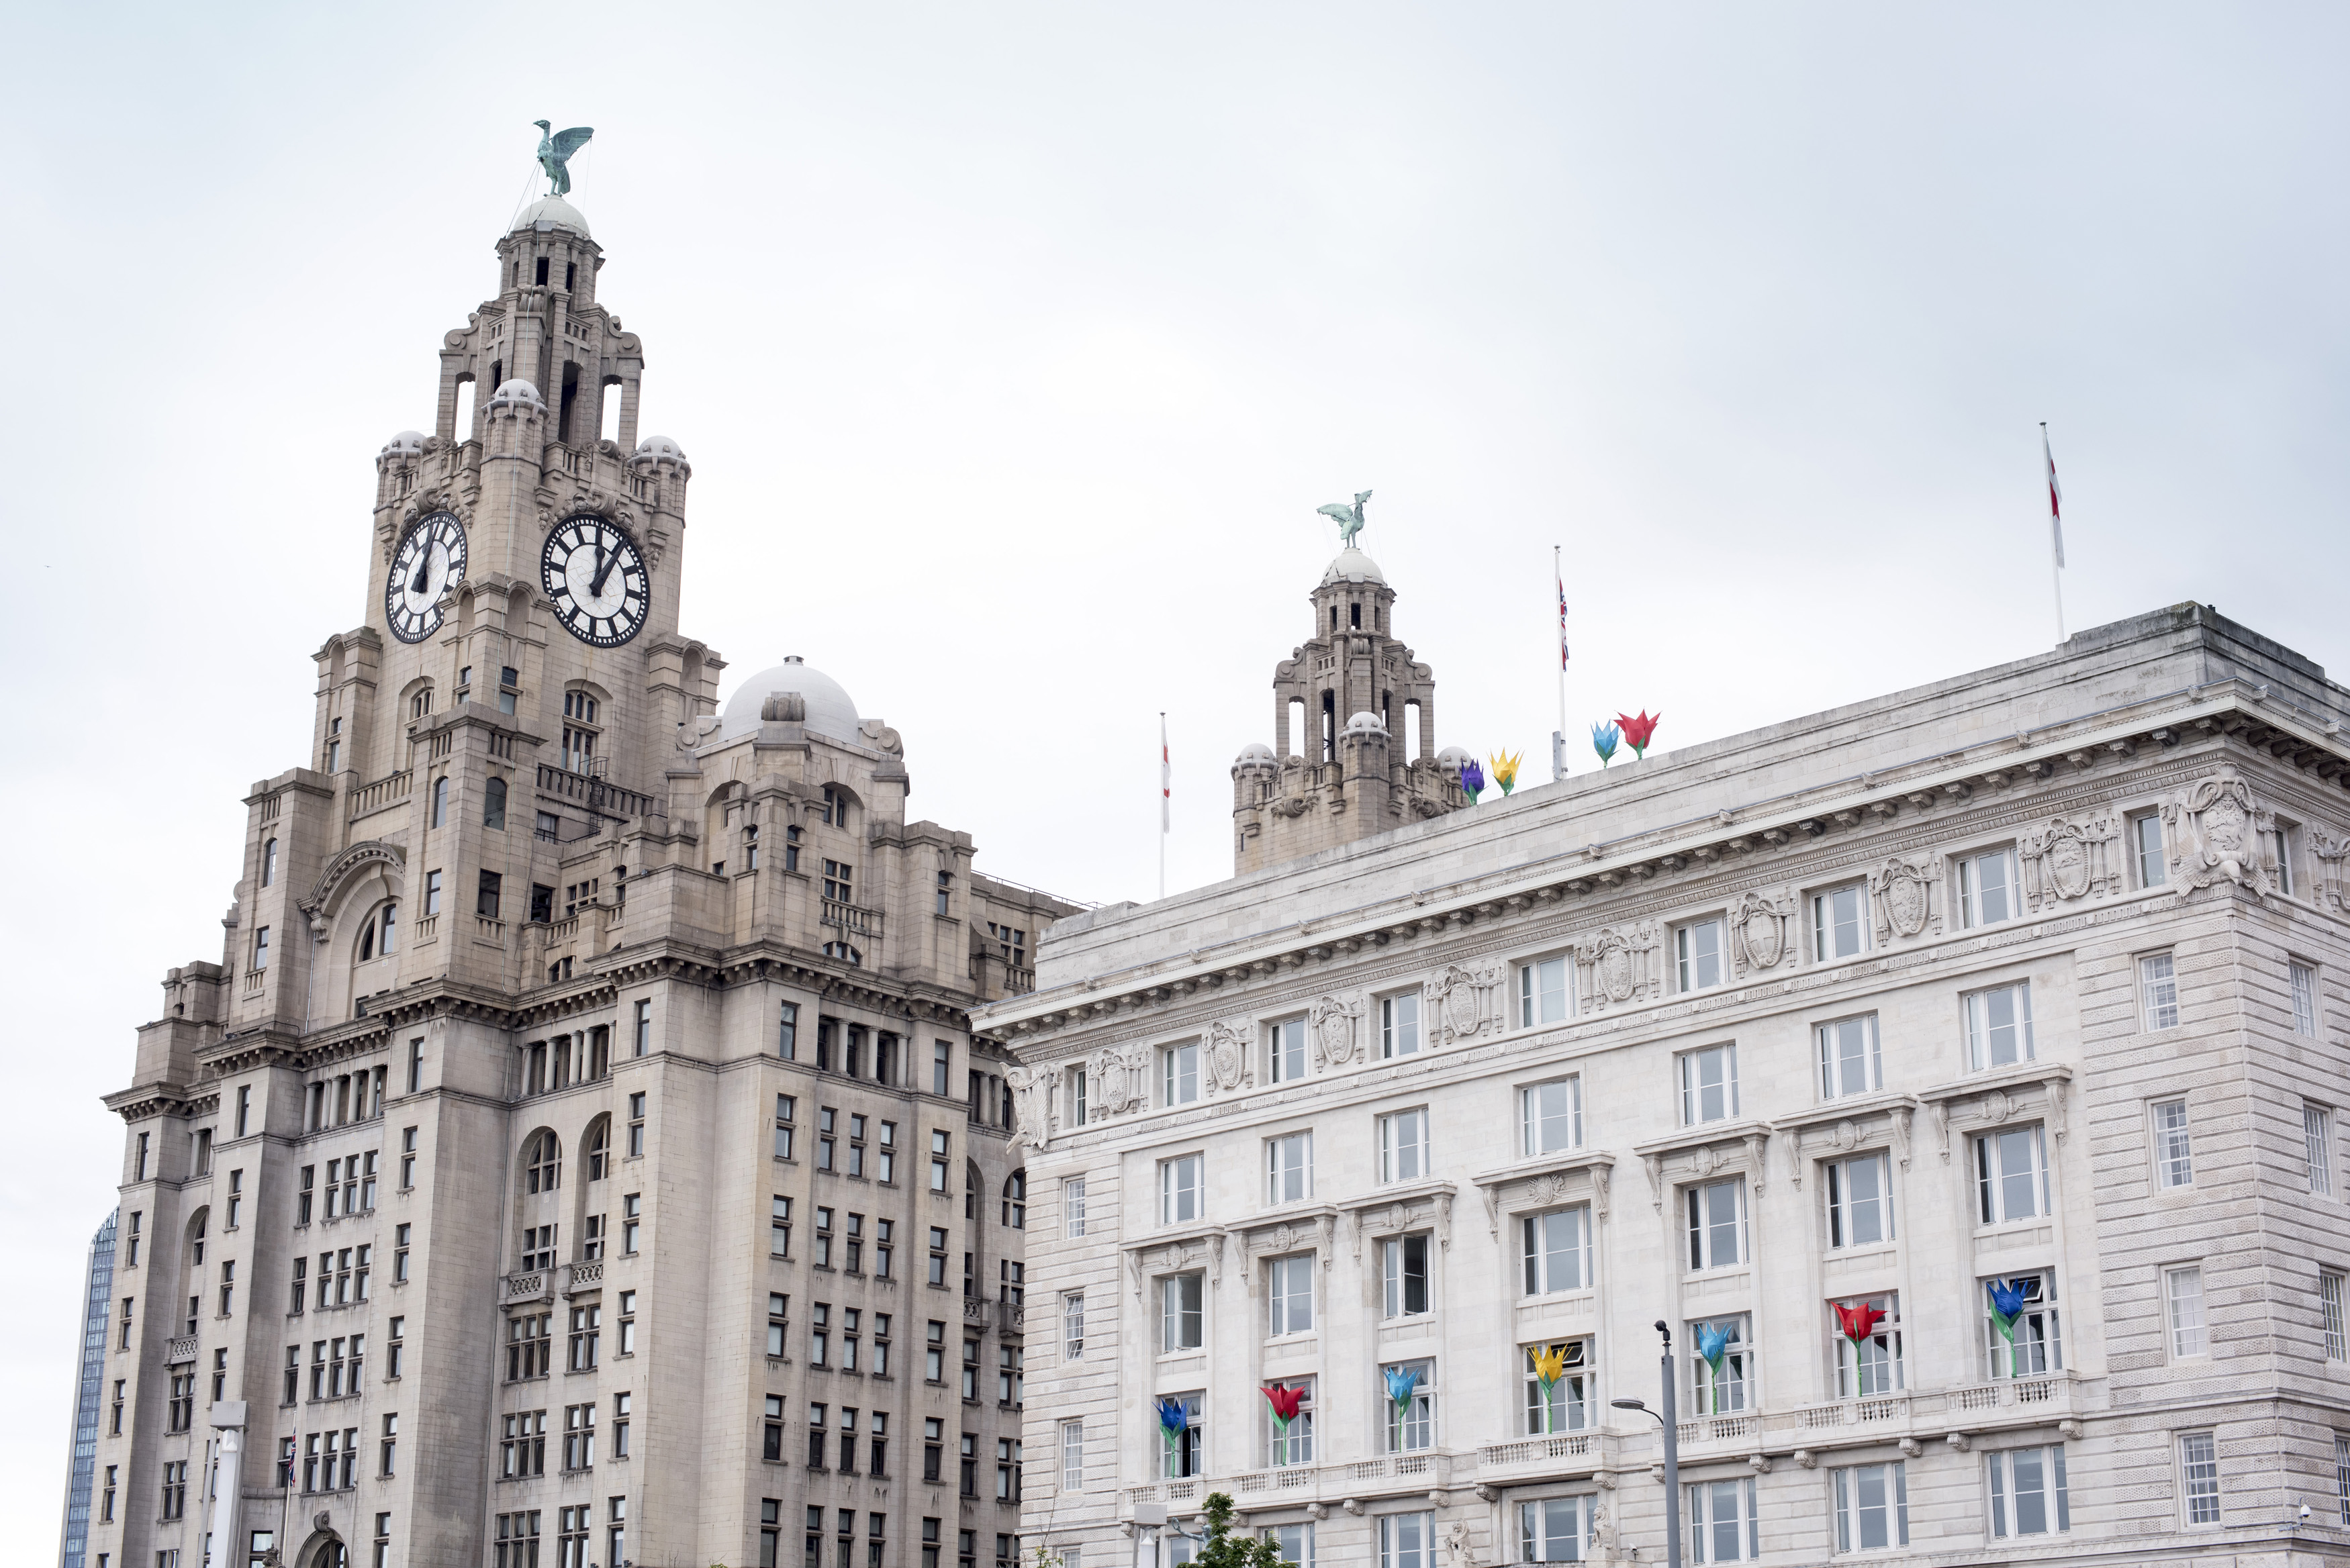 Liverpool Liver Building with famous clock tower and statues on top in the United Kingdom under overcast sky